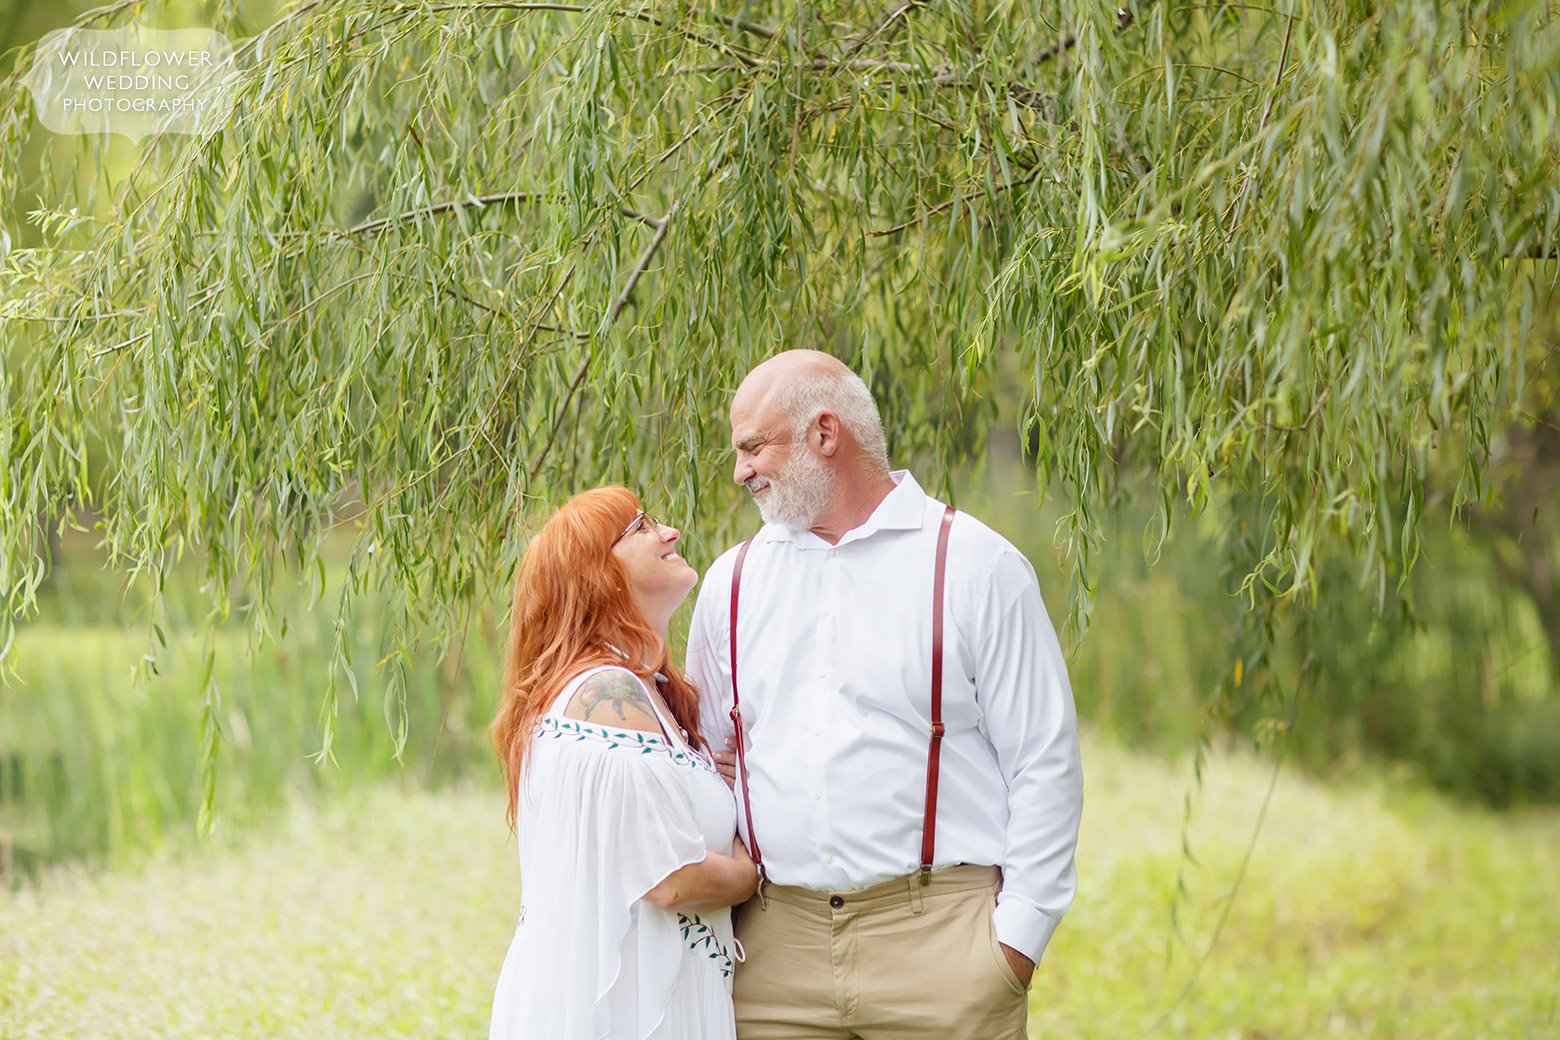 Bride and groom look at each other under a weeping willow in Missouri.